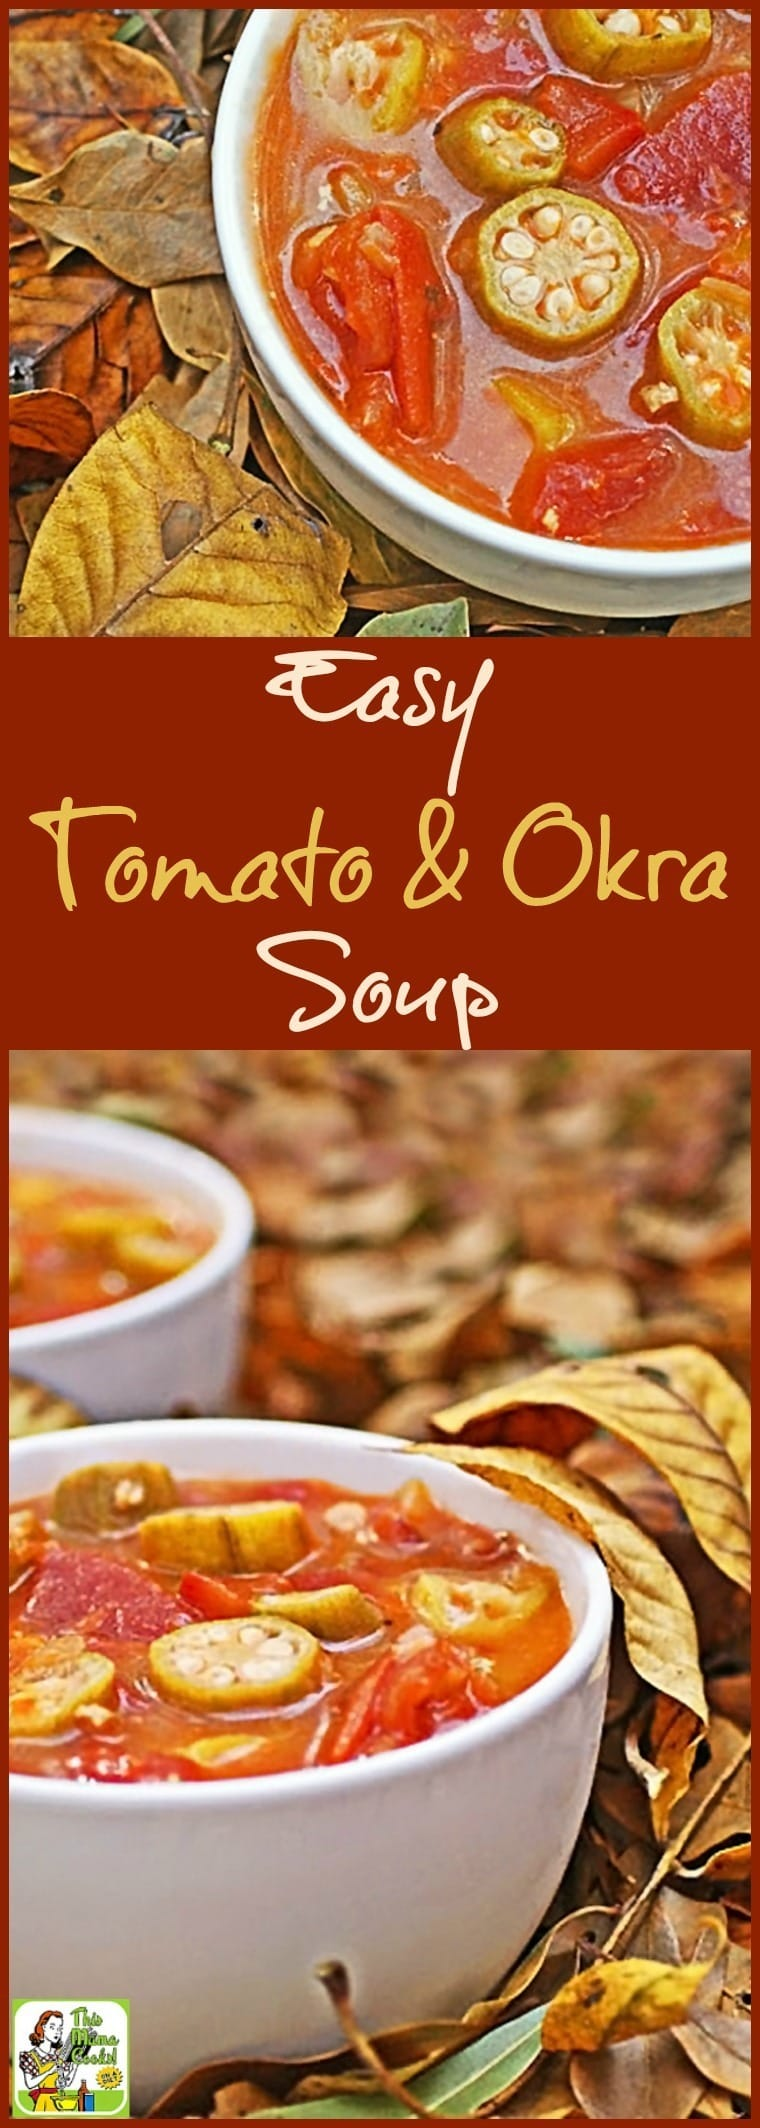 Have you ever tried okra soup? Well, if you're looking for an easy to make, healthy soup recipe, you'll love this Easy Tomato & Okra Soup recipe. So delicious, even your kids will ask for seconds! Make a double batch and freeze half for another night's soup and salad lunch or dinner. #soup #okra #tomatoes #easyrecipe #healthysoup #glutenfree #soupandsalad #healthyrecipe